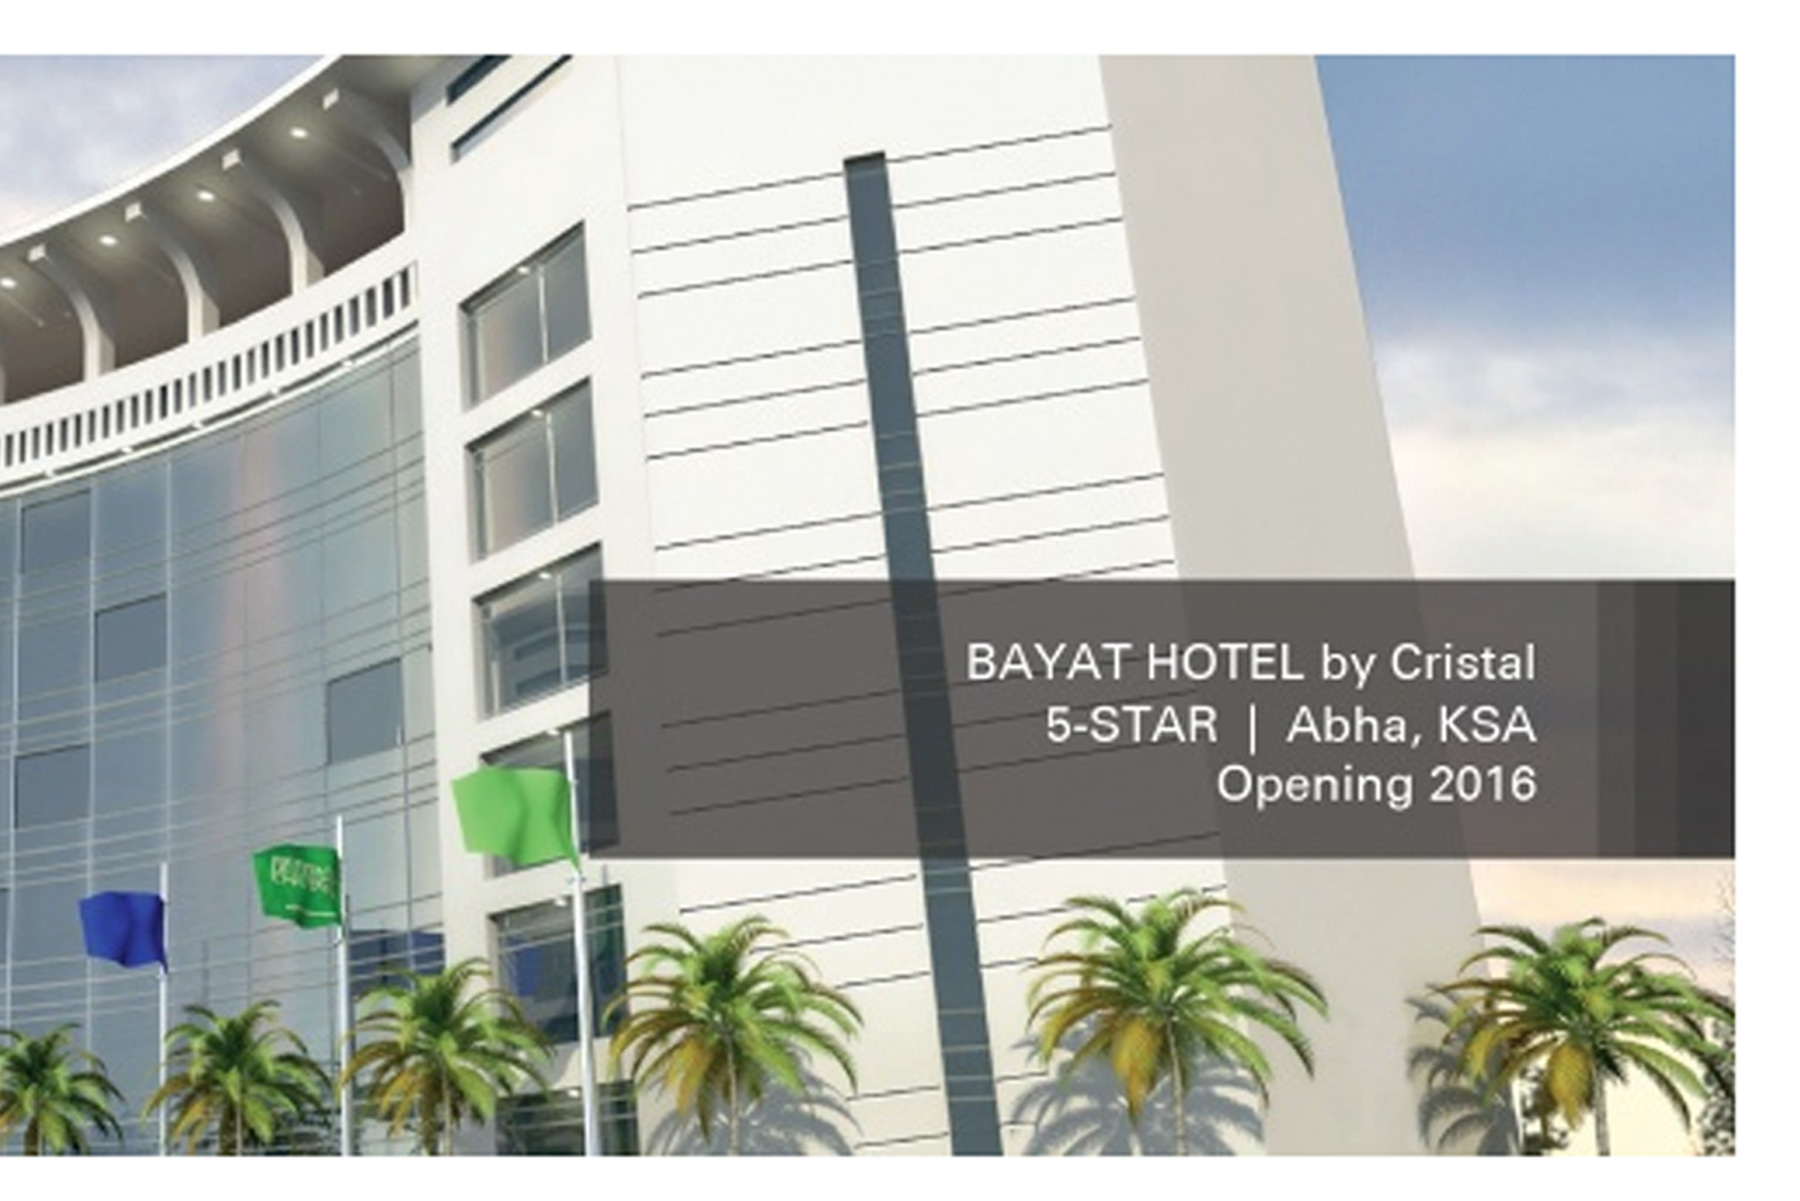 CRISTAL LAUNCHES THE BAYAT HOTEL BY CRISTAL IN THE KINGDOM OF SAUDI ARABIA